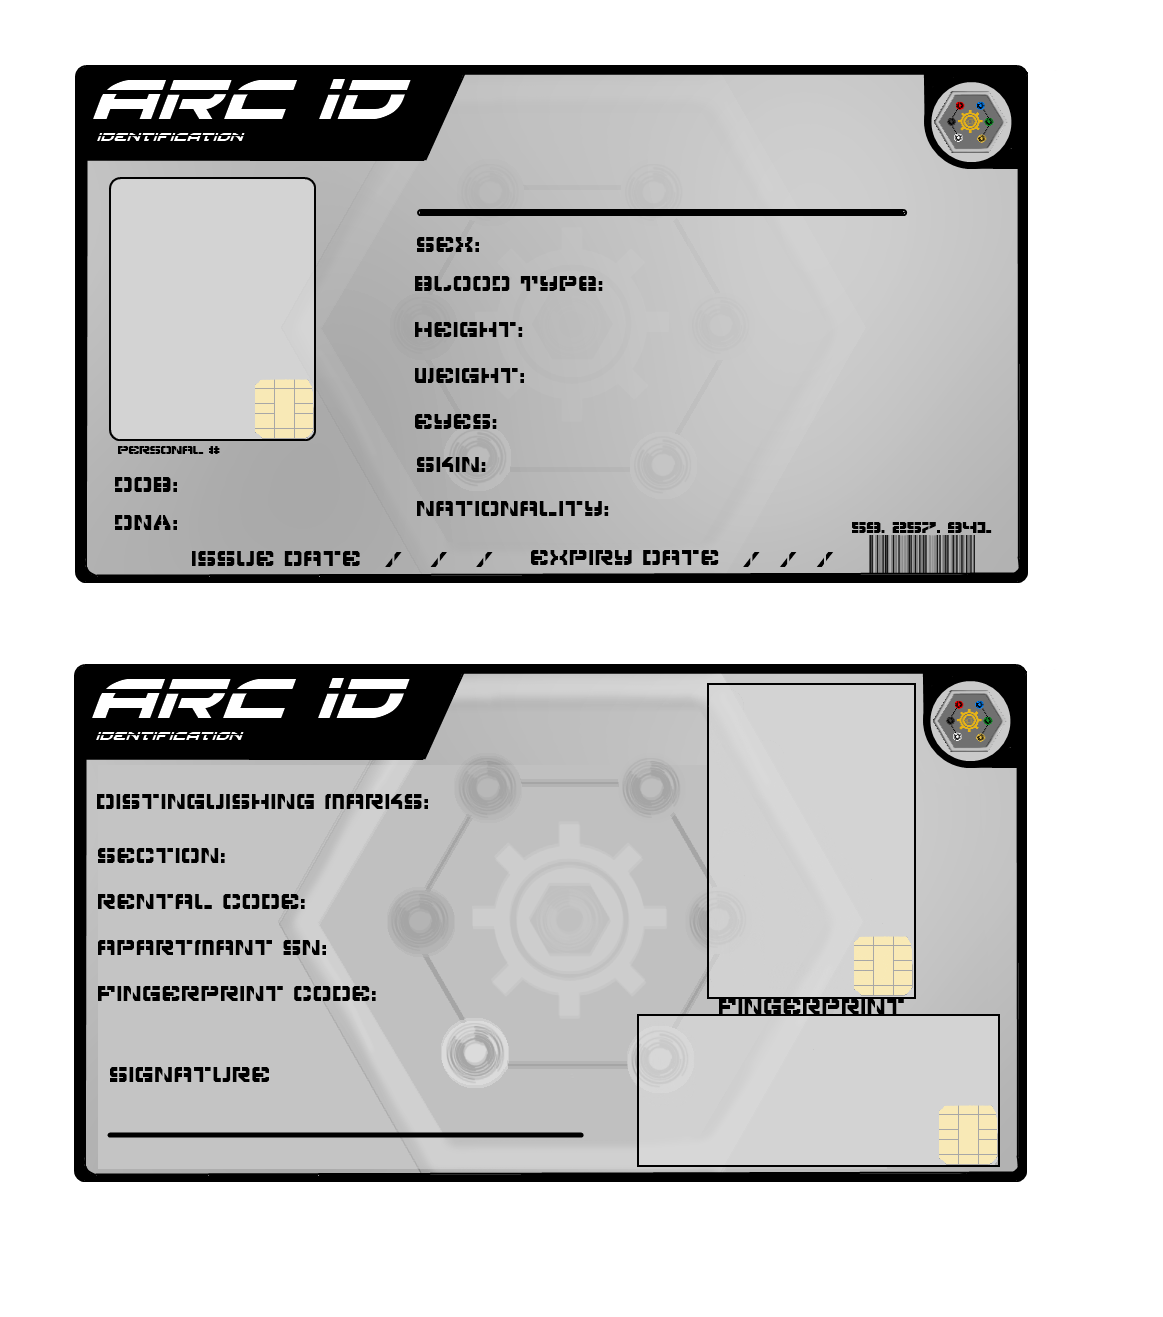 Blank id card template car interior design for Identification badges template